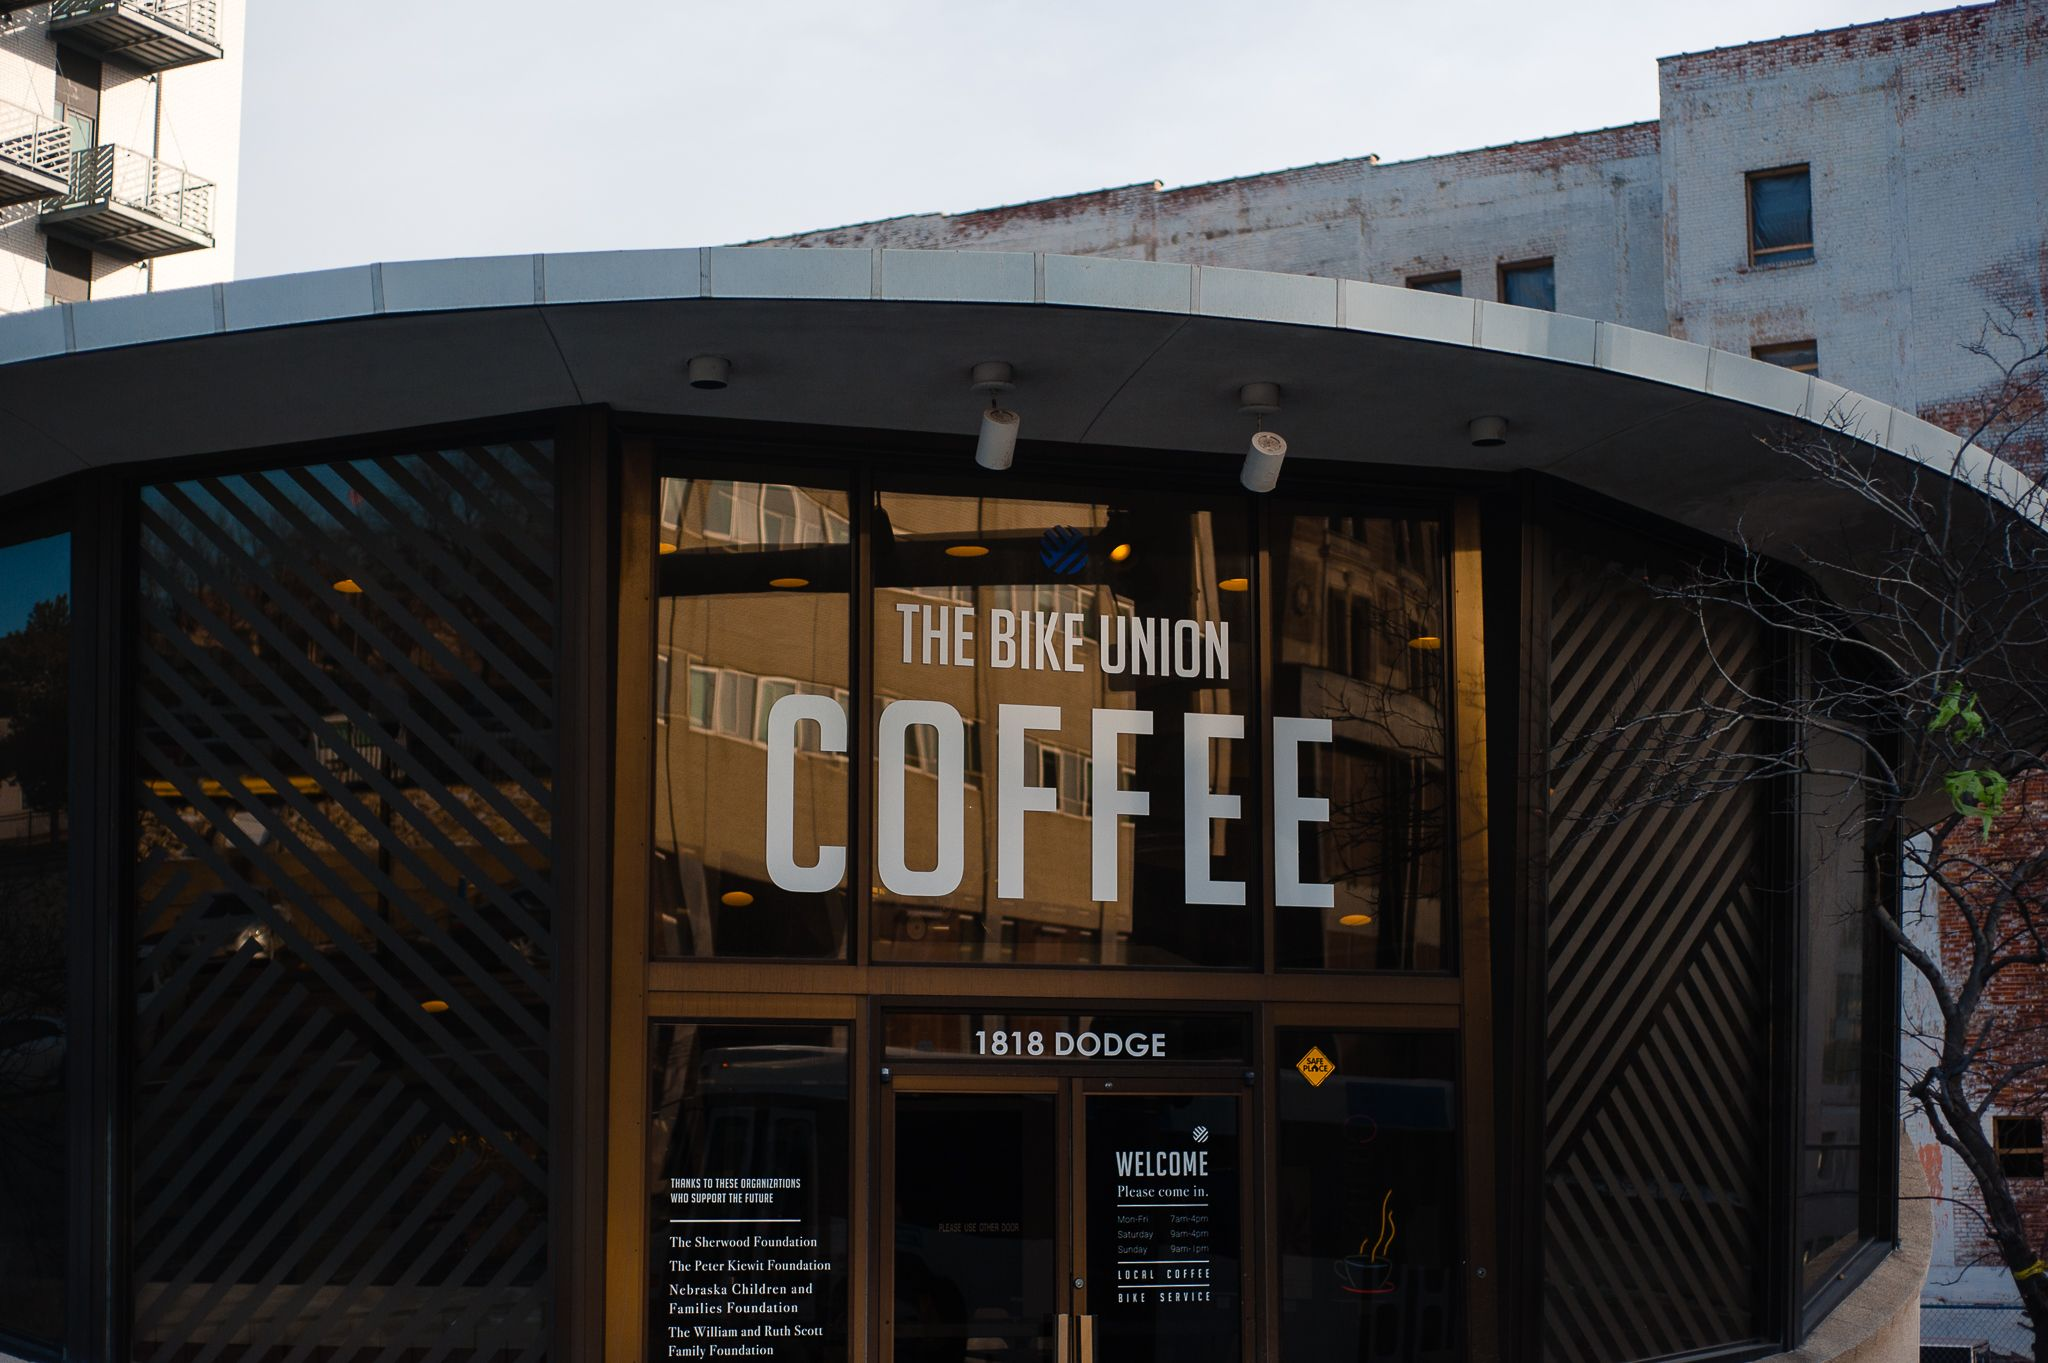 RISE & Shine at The Bike Union - Every Friday!